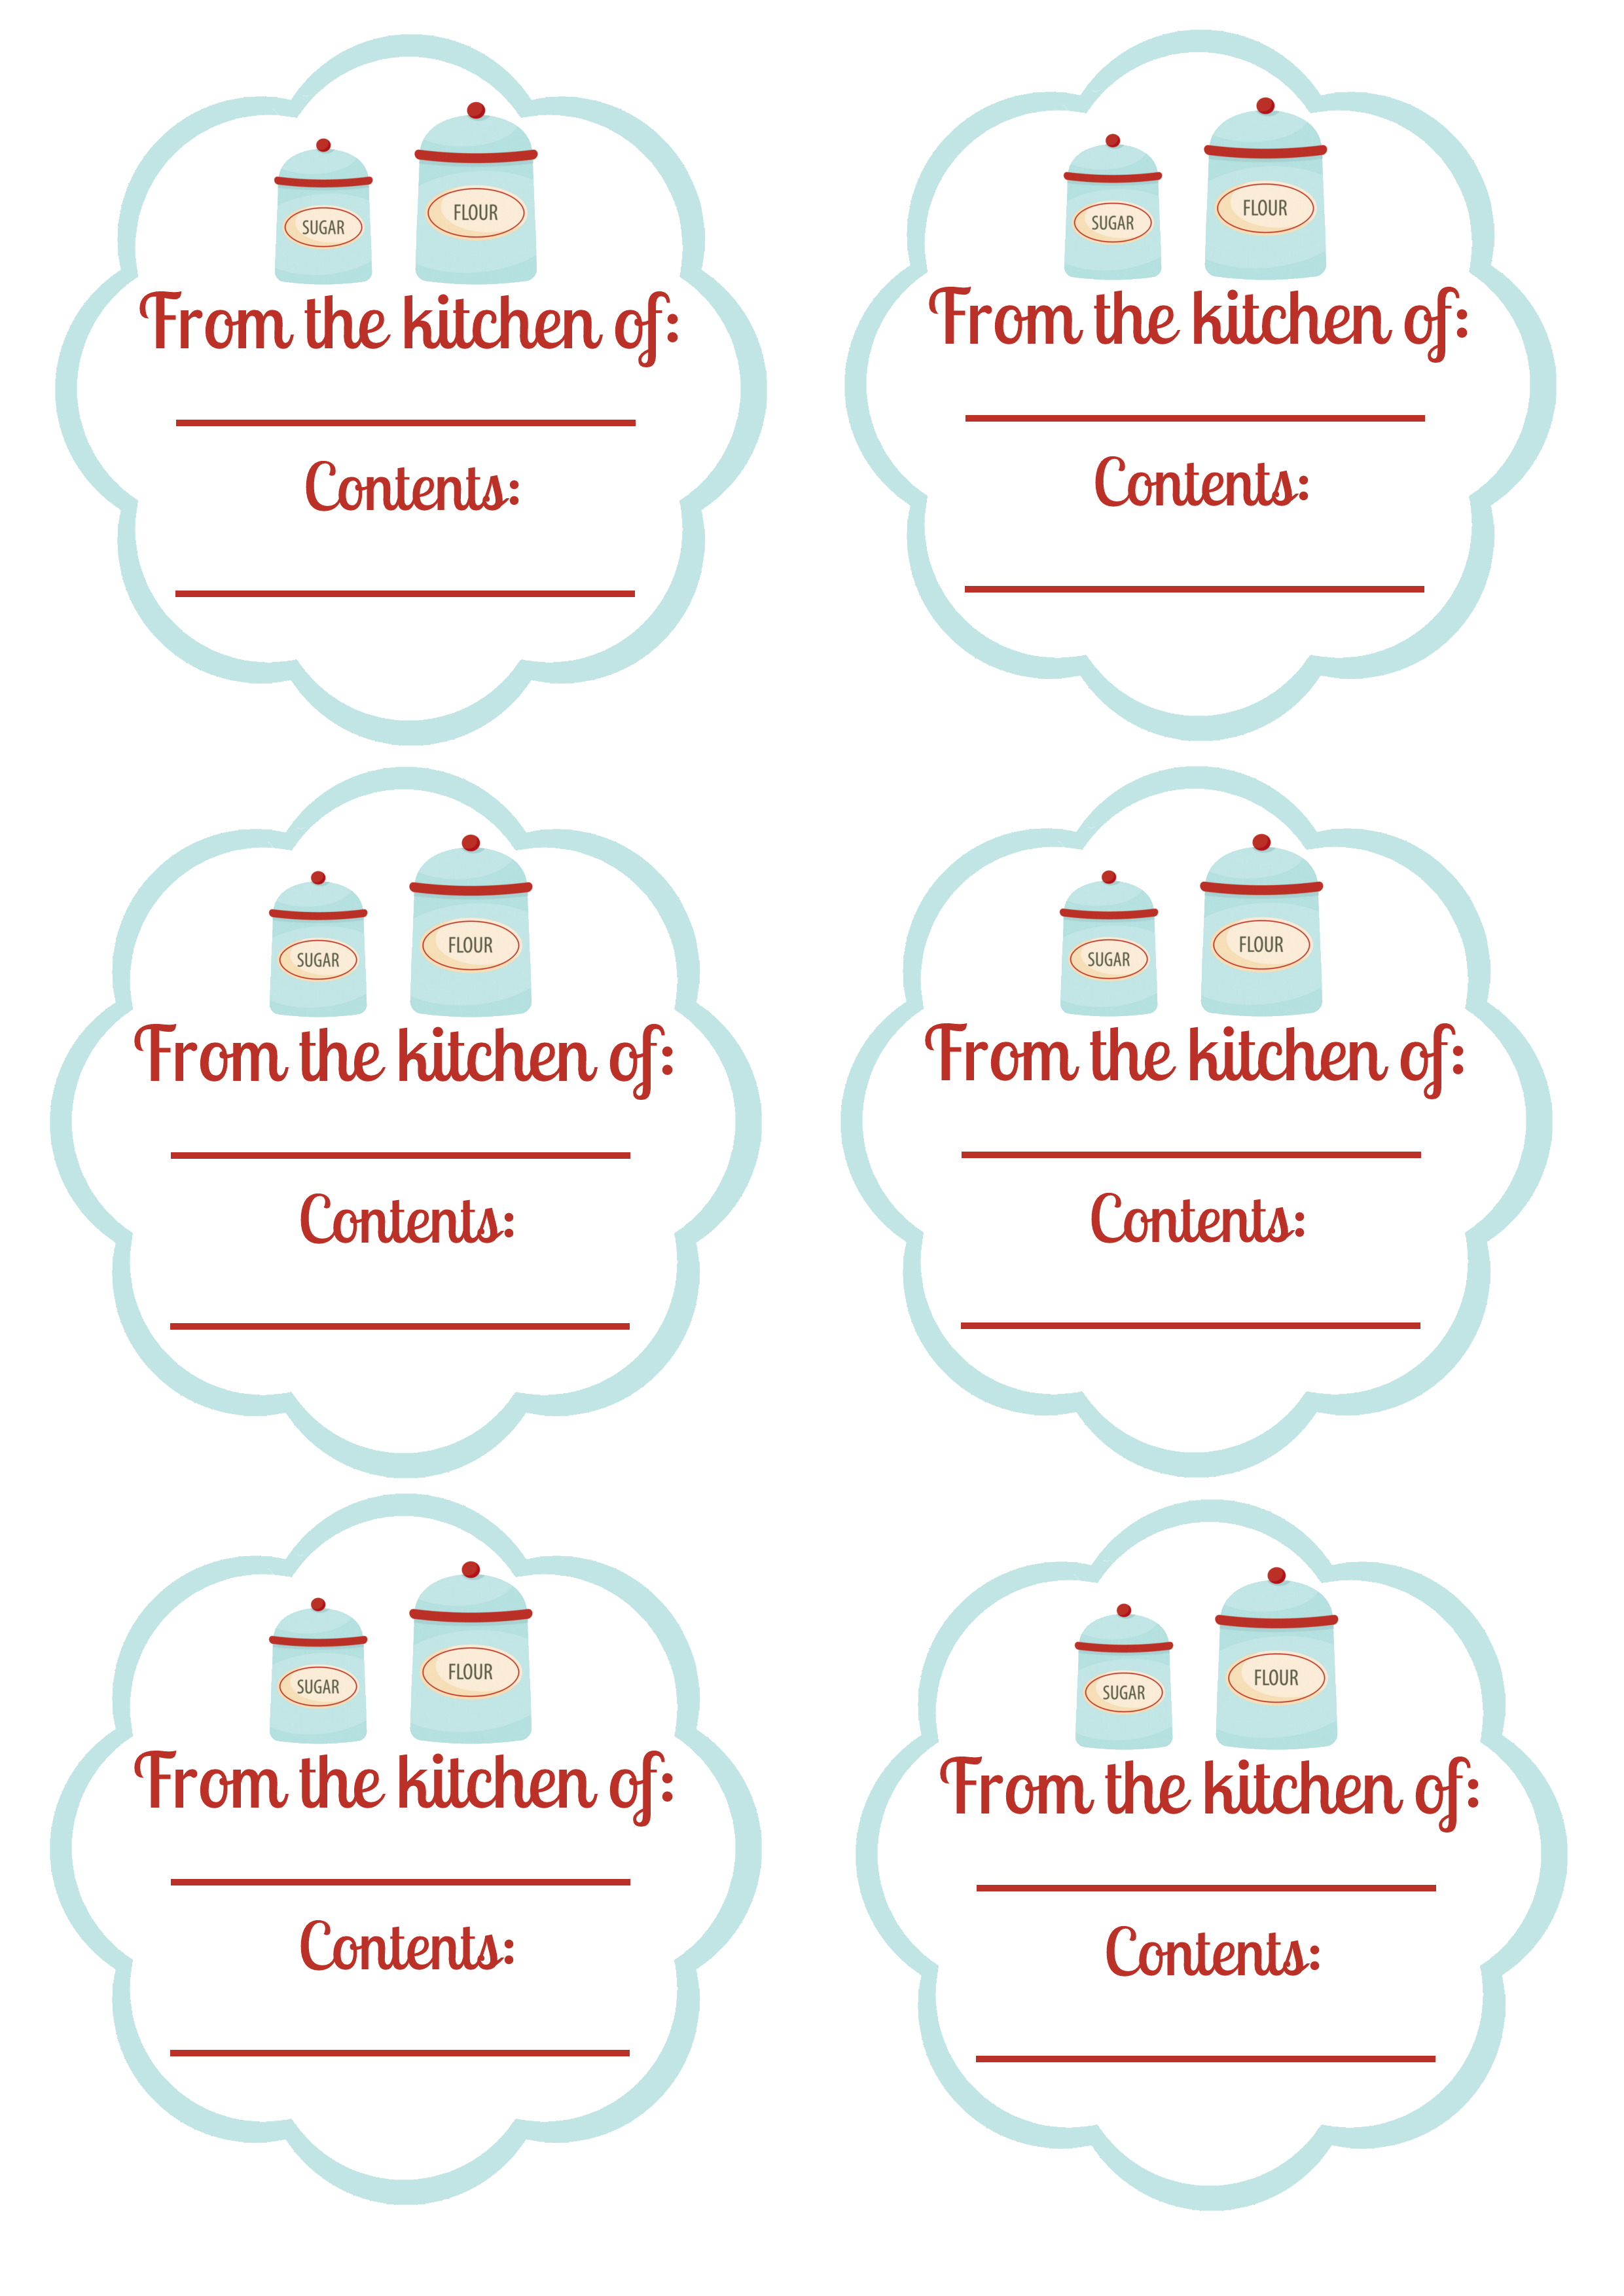 Free Printable - Food Labels And Canning Labels   Blissfully Domestic - Free Printable Food Labels